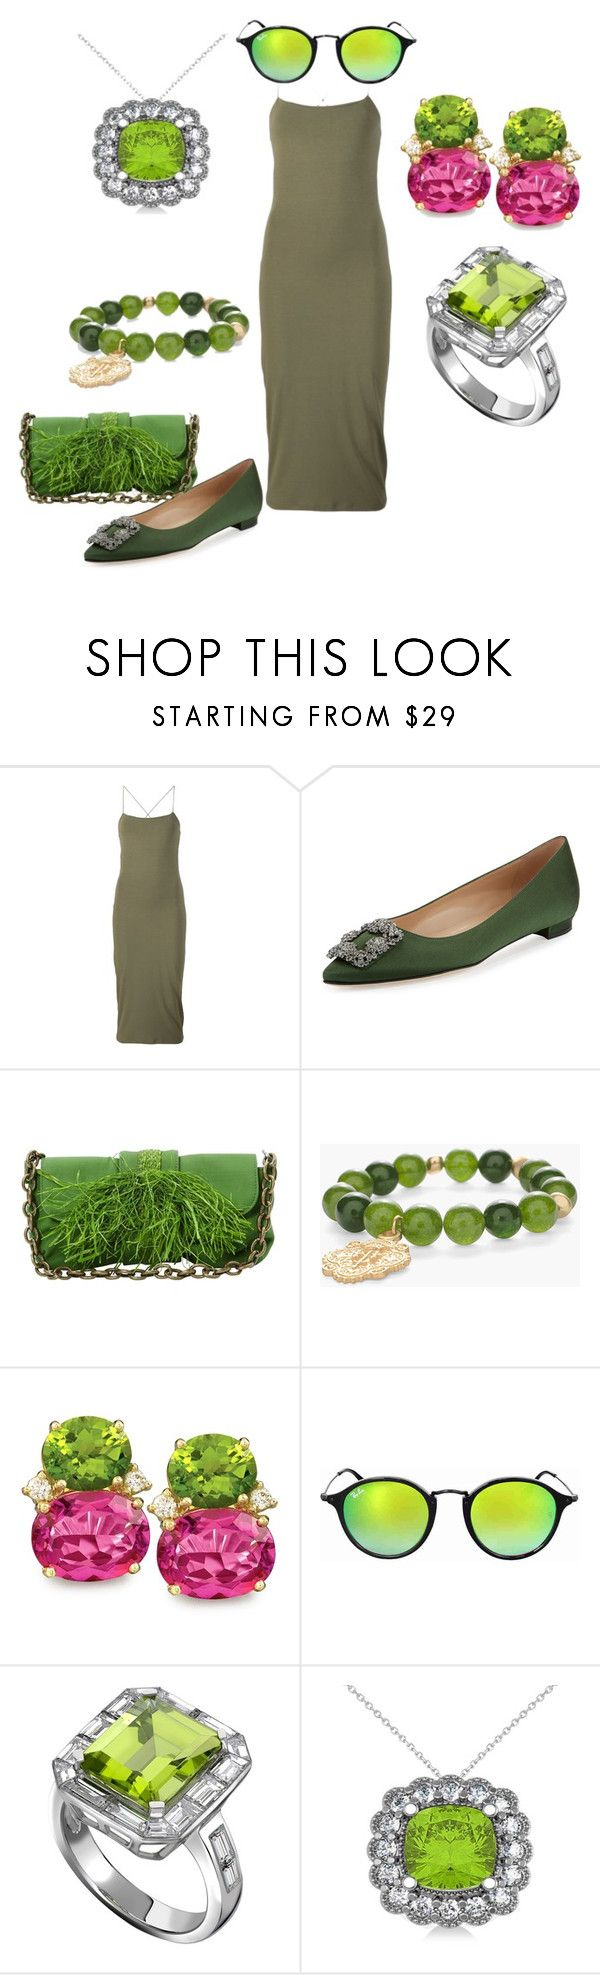 """Untitled #114"" by rosshandmadecrafts ❤ liked on Polyvore featuring T By Alexander Wang, Manolo Blahnik, Lanvin, Chico's, Ray-Ban and Allurez"